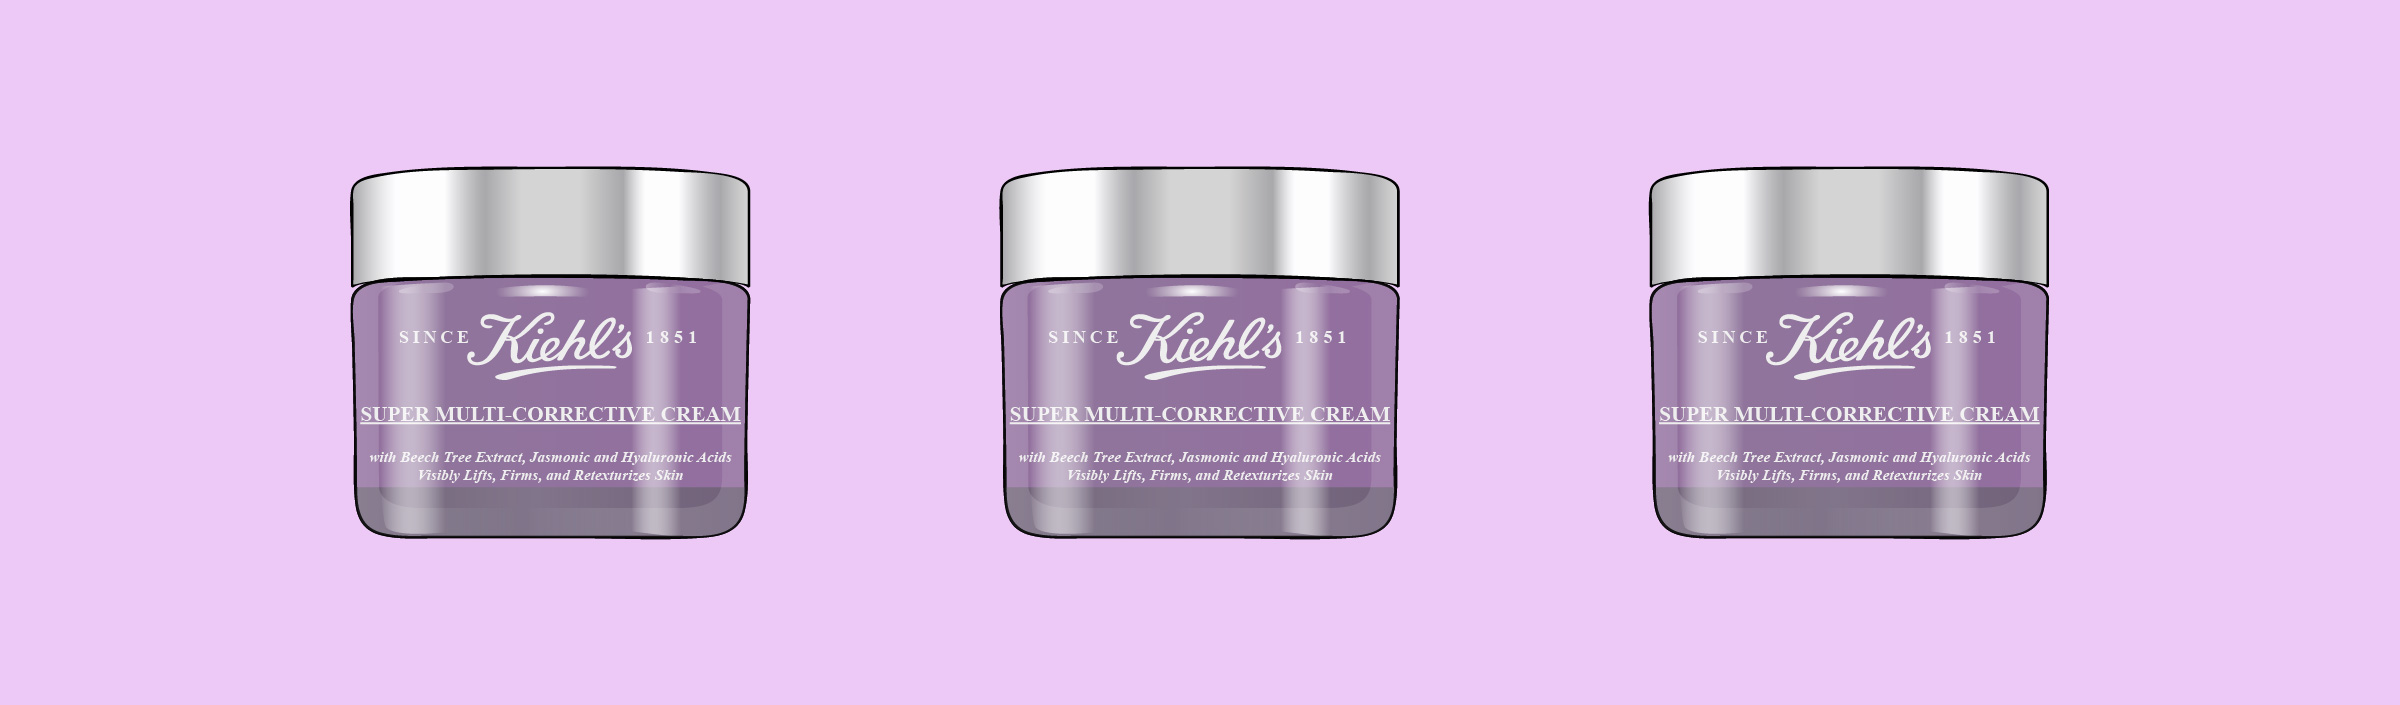 Kiehl's Multi Corrective Cream Review.jpg